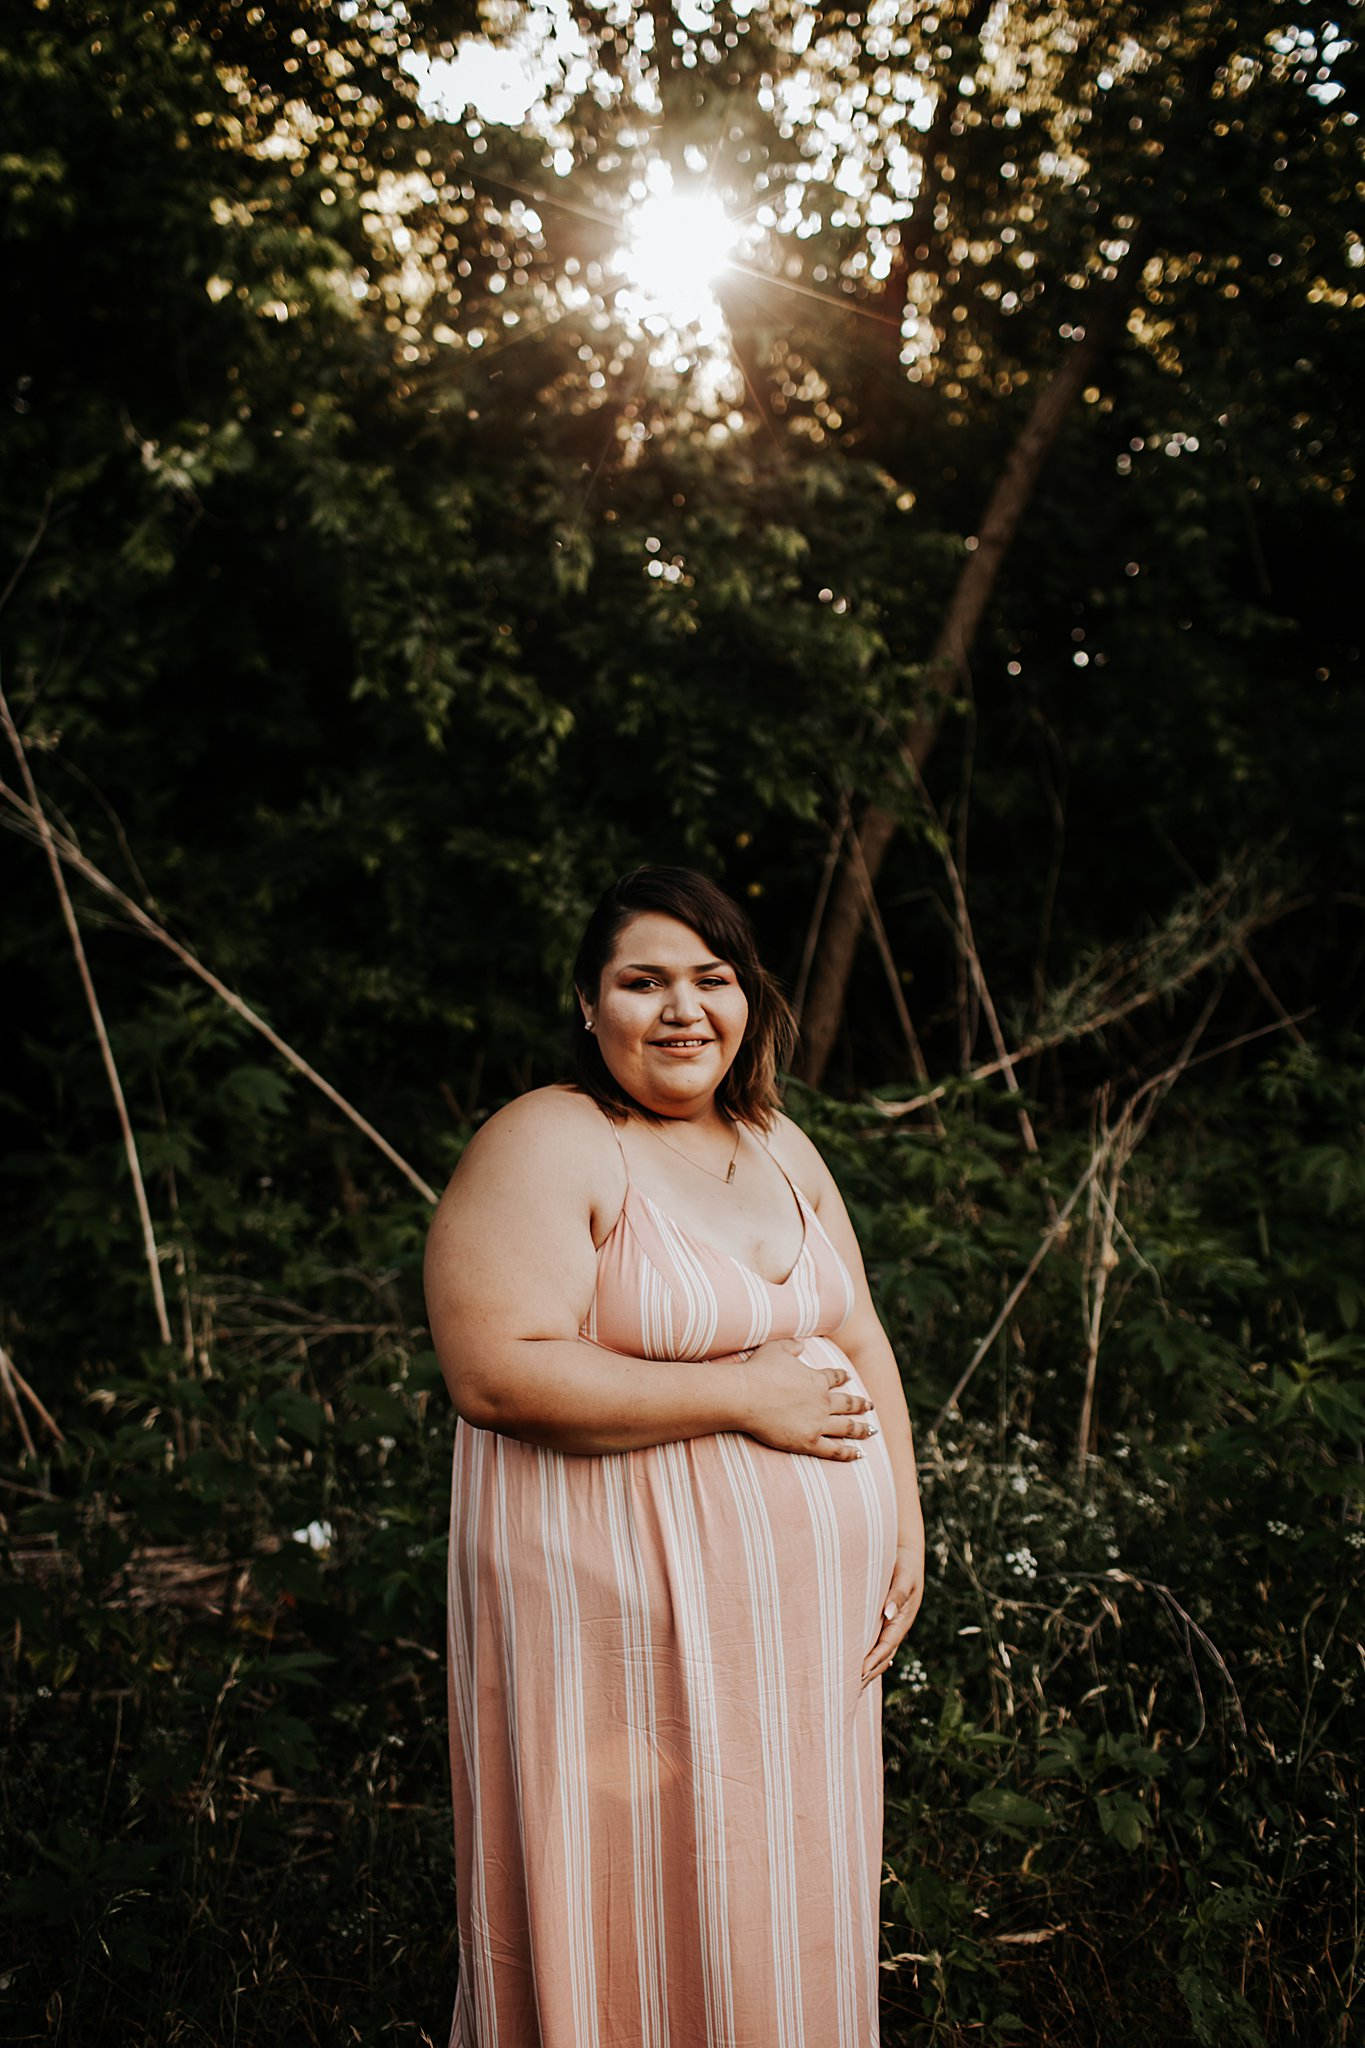 Vanny-San-Antonio-Maternity-Photographer-10_WEB.jpg